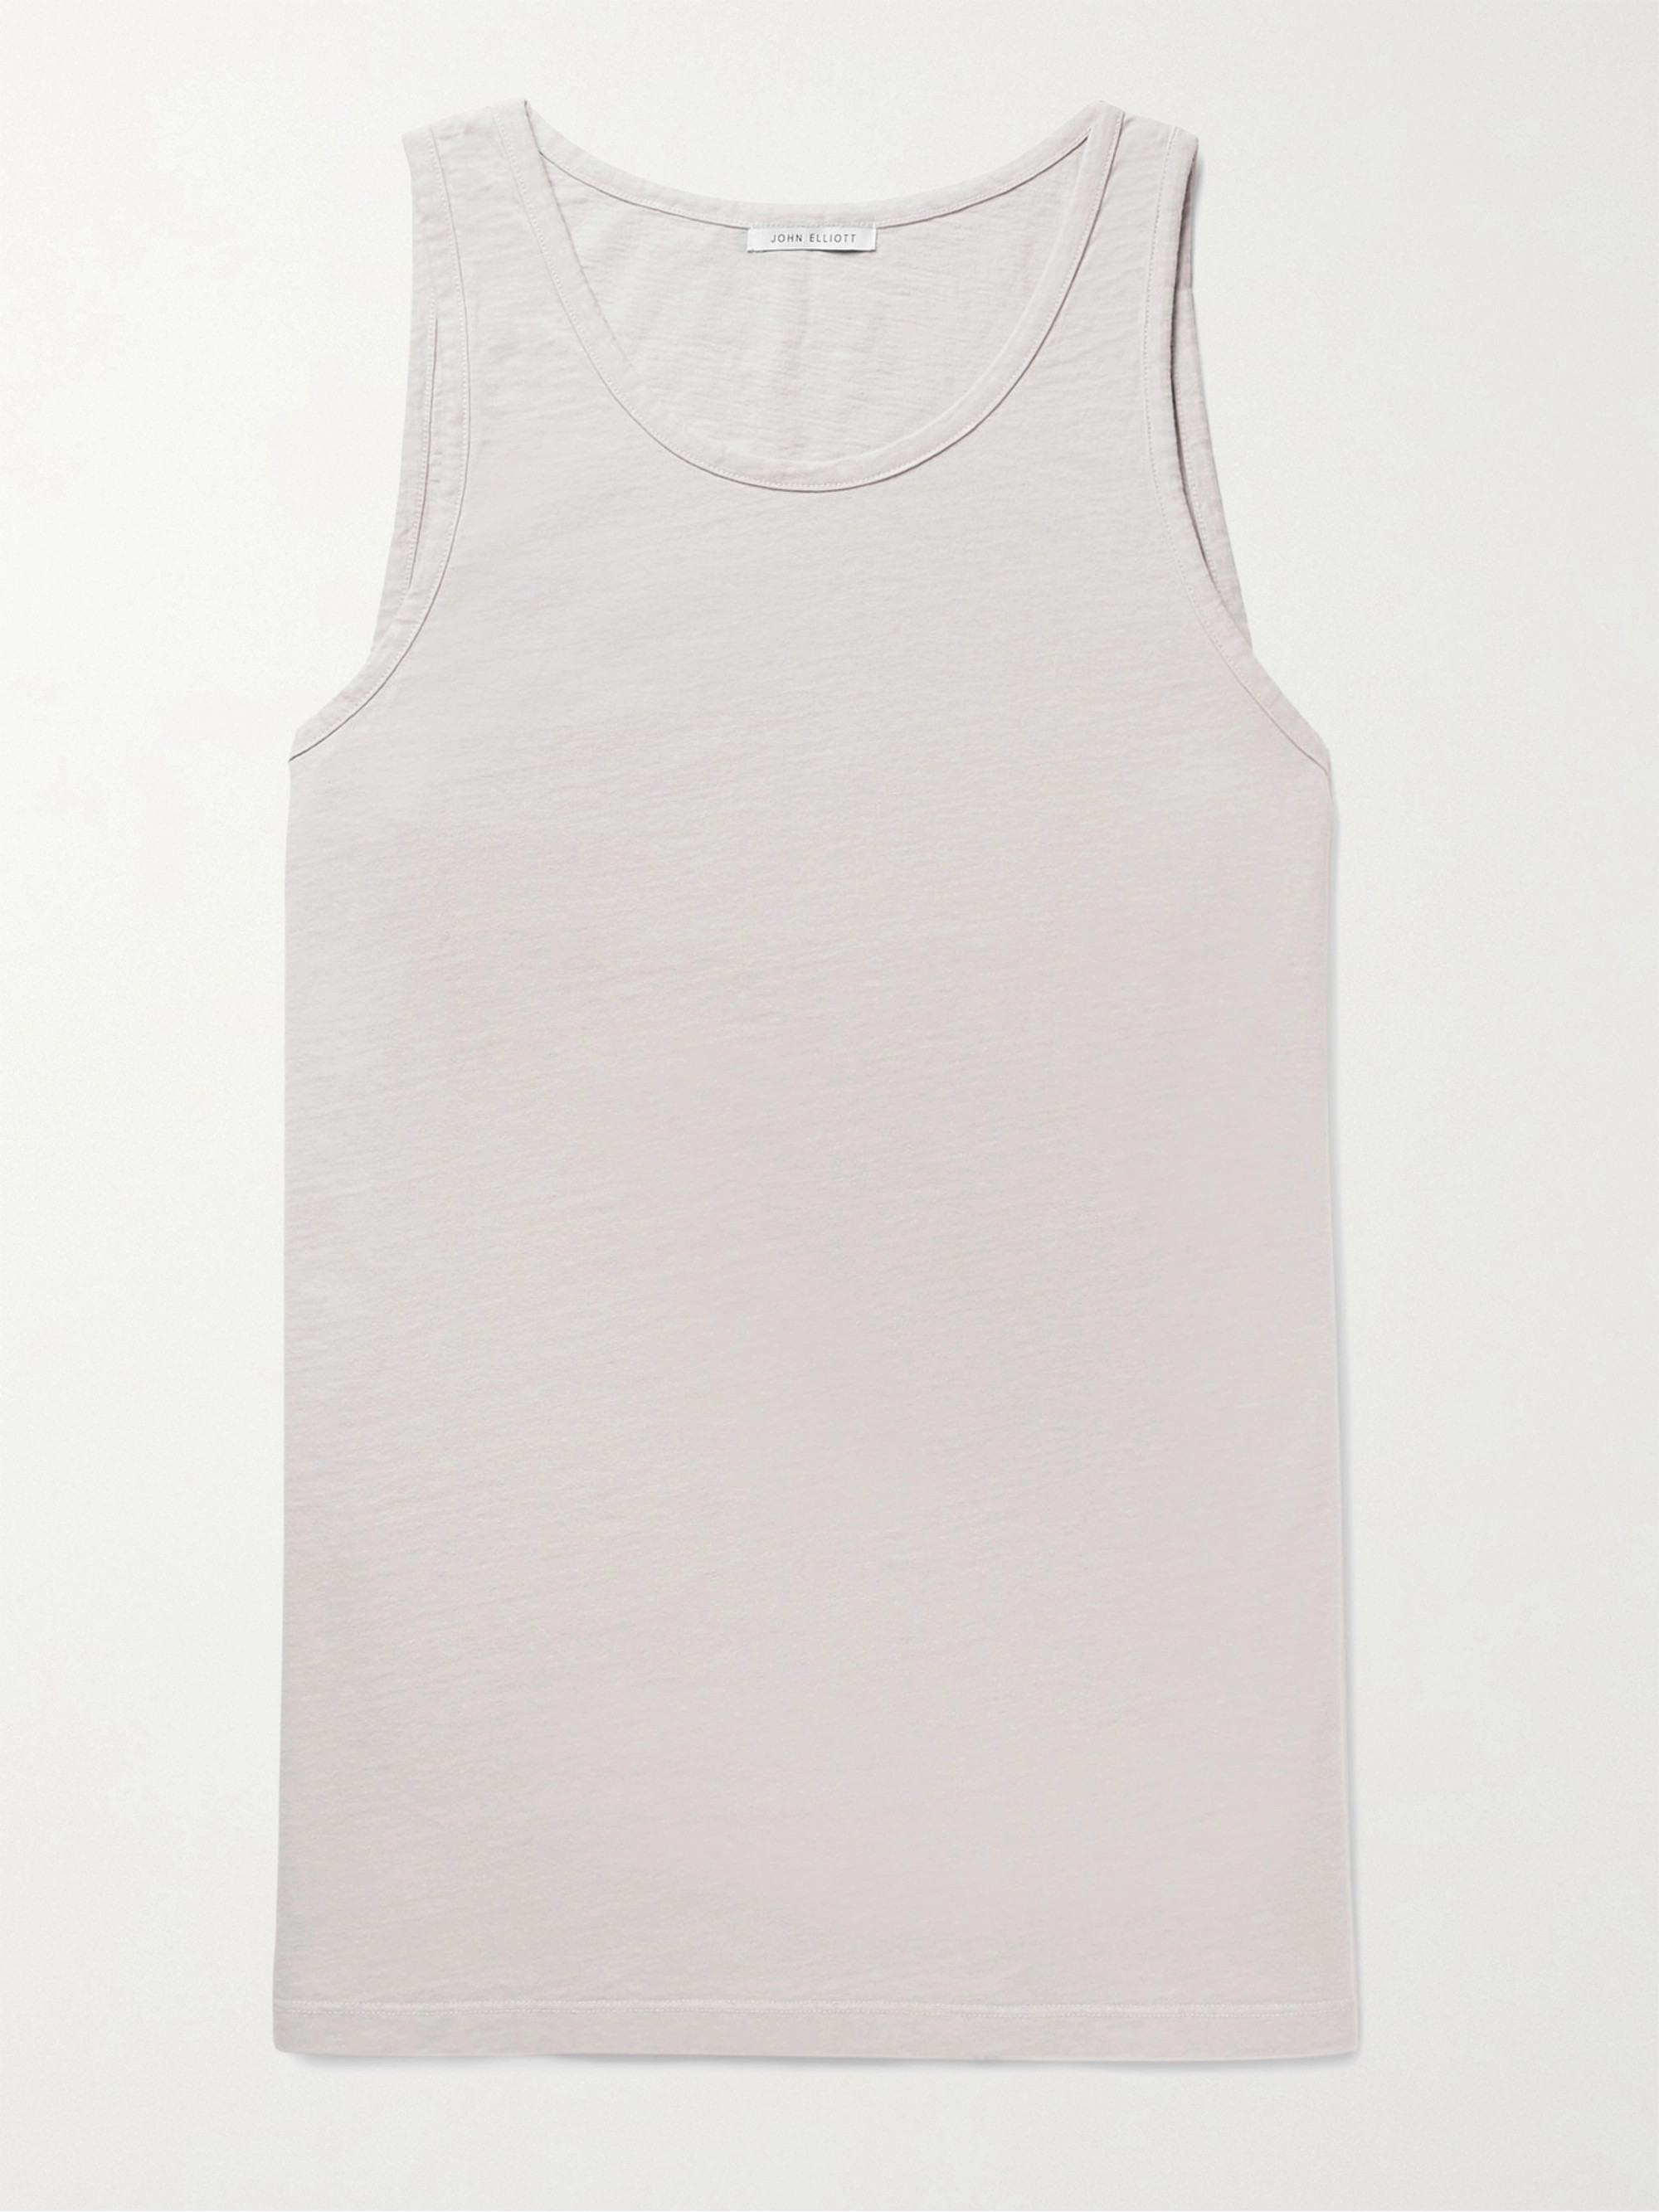 John Elliott Cotton Tank Top